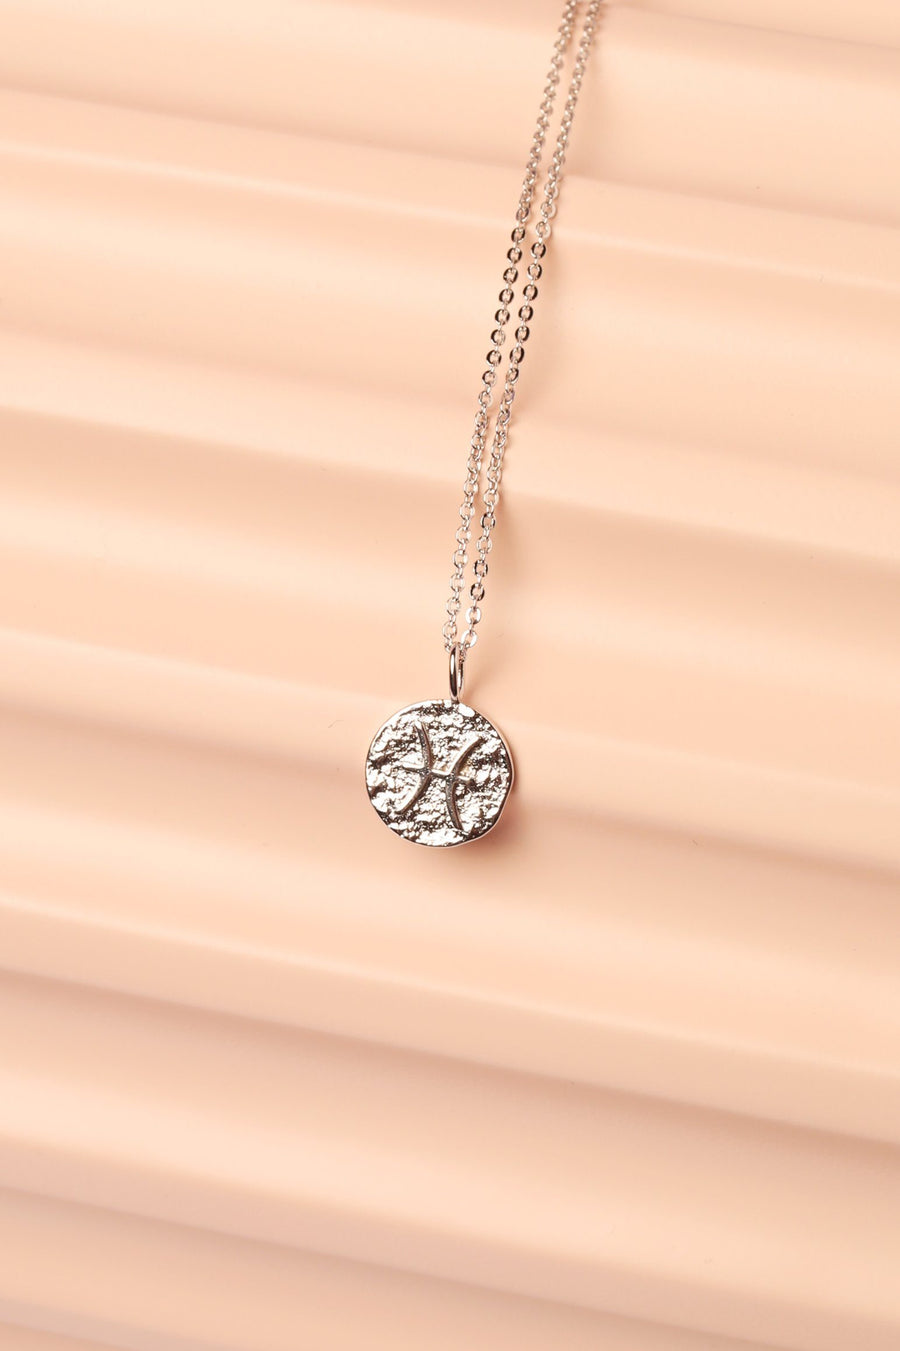 Silver Zodiac Charm Necklace Necklace Mulberry & Grand Pisces